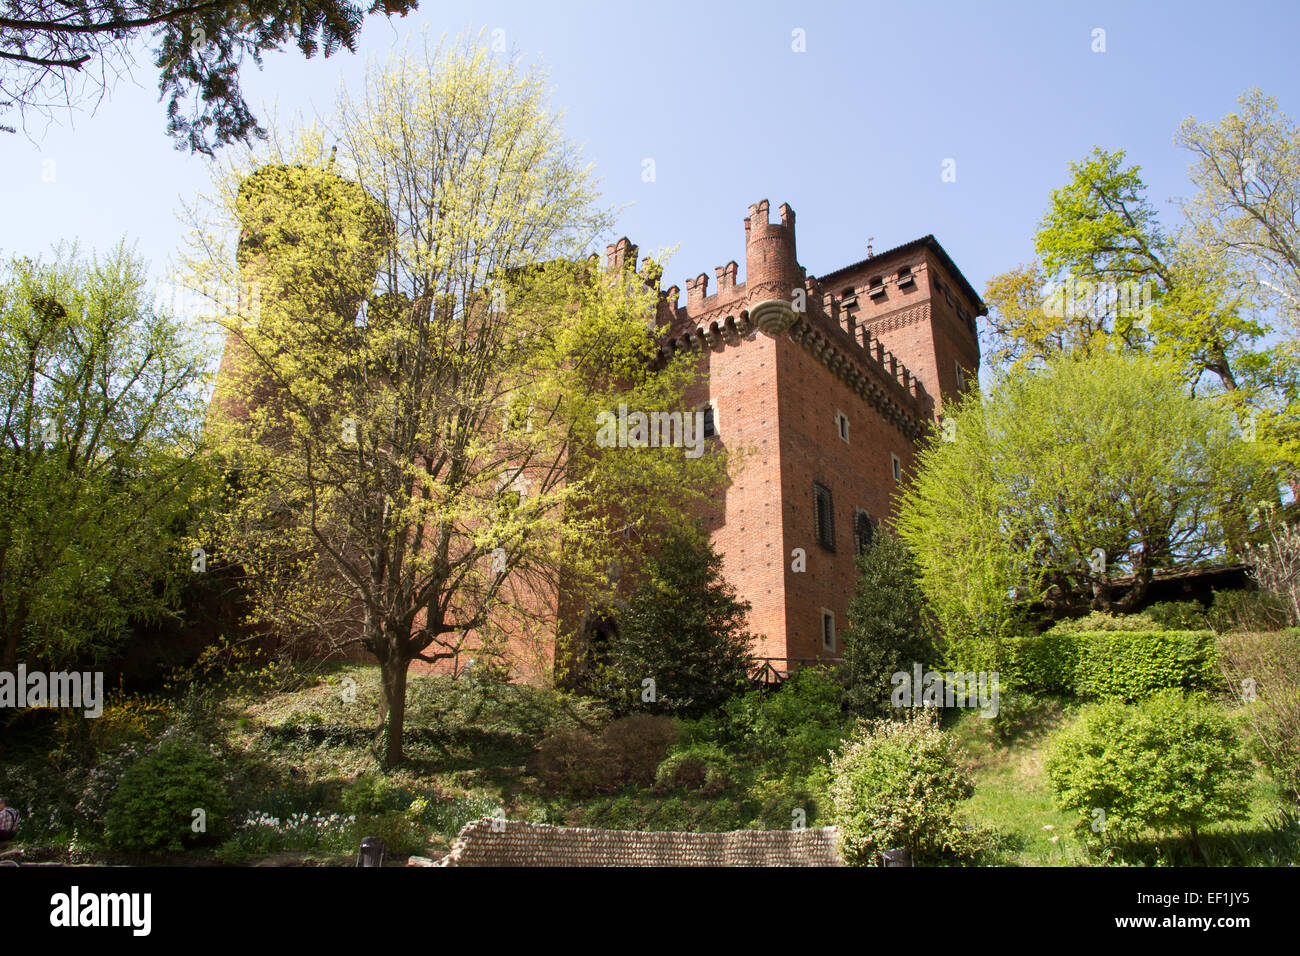 The castle of the medieval town, Turin, Italy Stock Photo